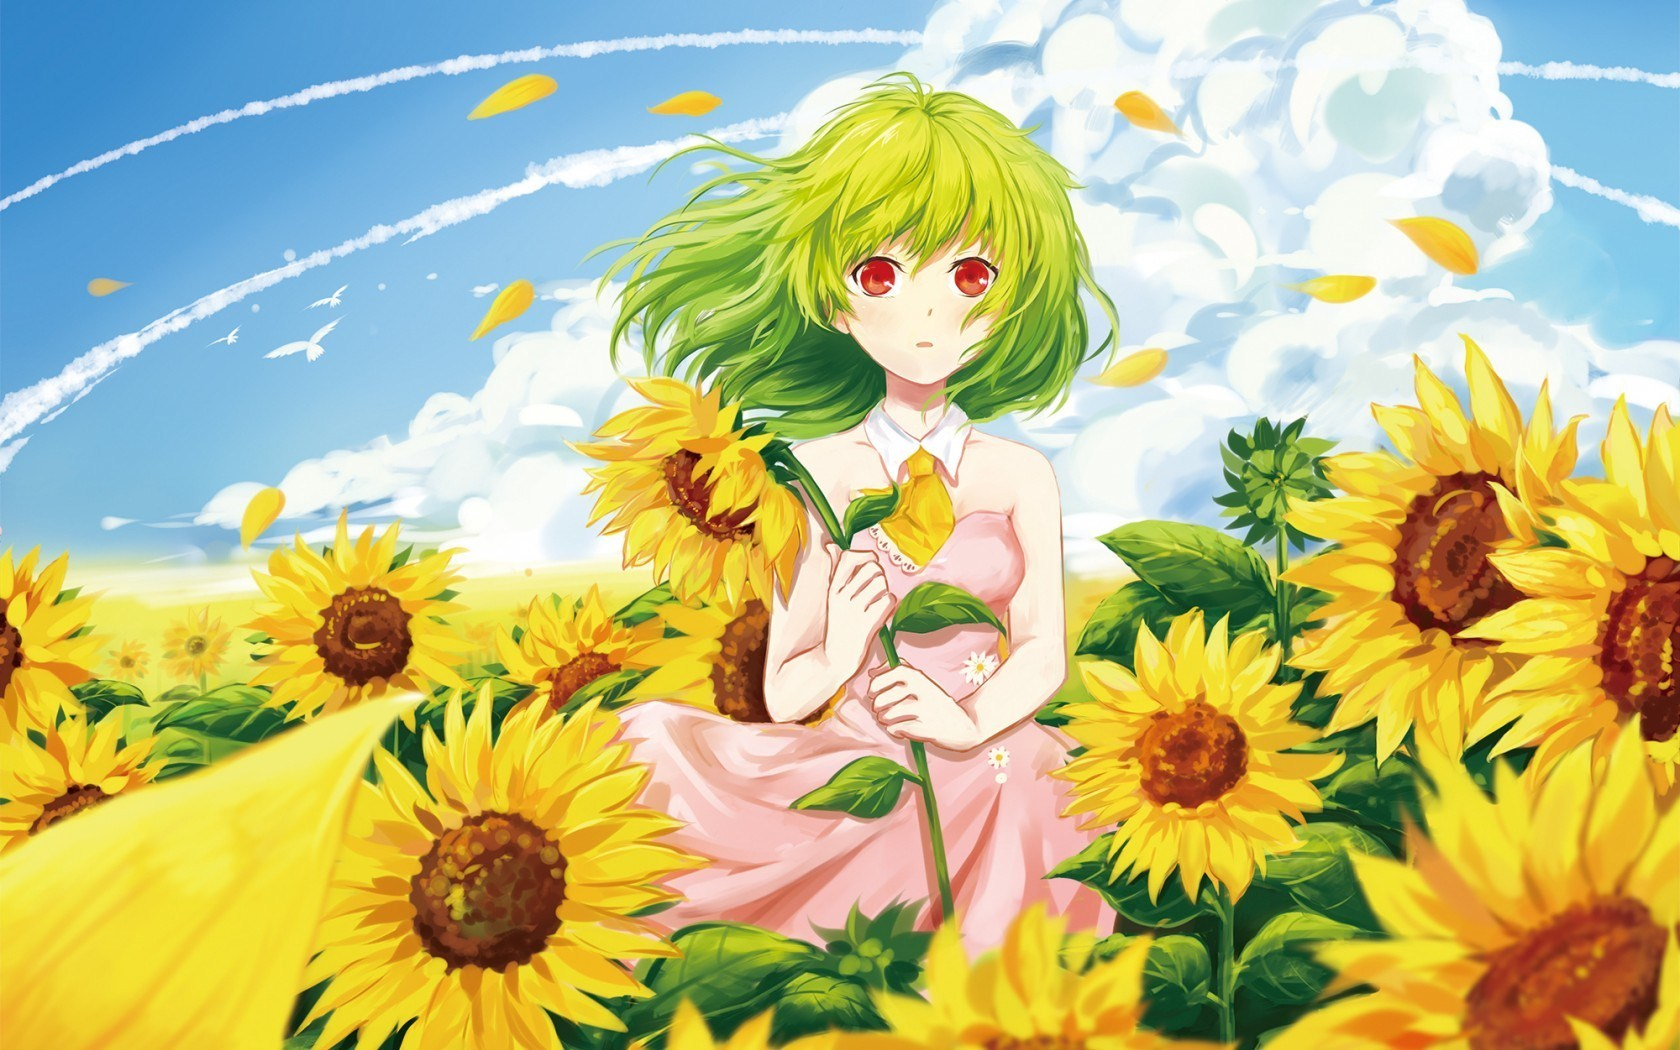 Girl Sunflowers Summer Anime